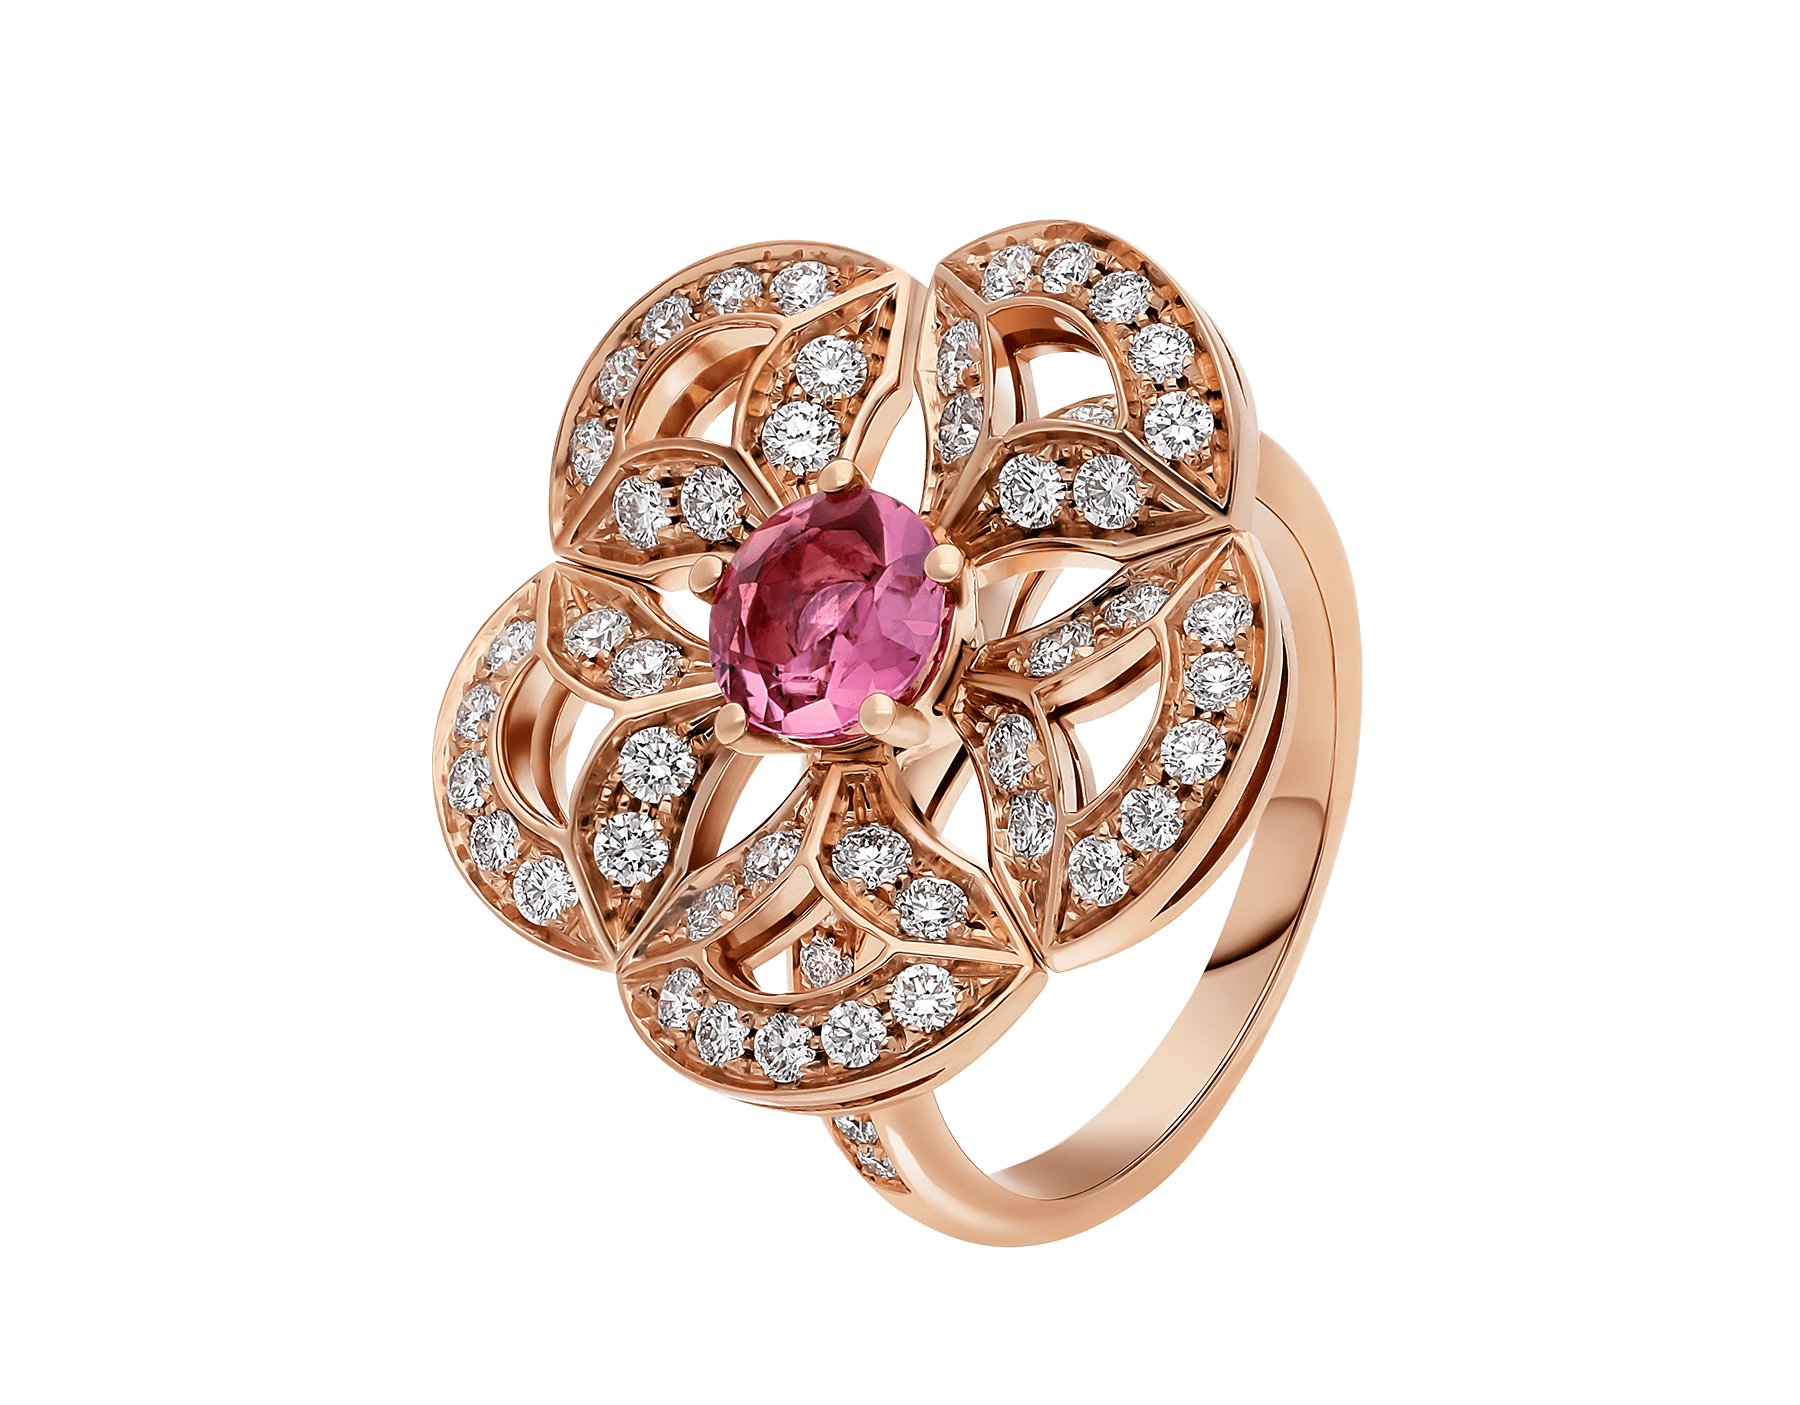 DIVAS' DREAM 18 kt rose gold ring set with a pink tourmaline and pavé diamonds AN858467 image 1